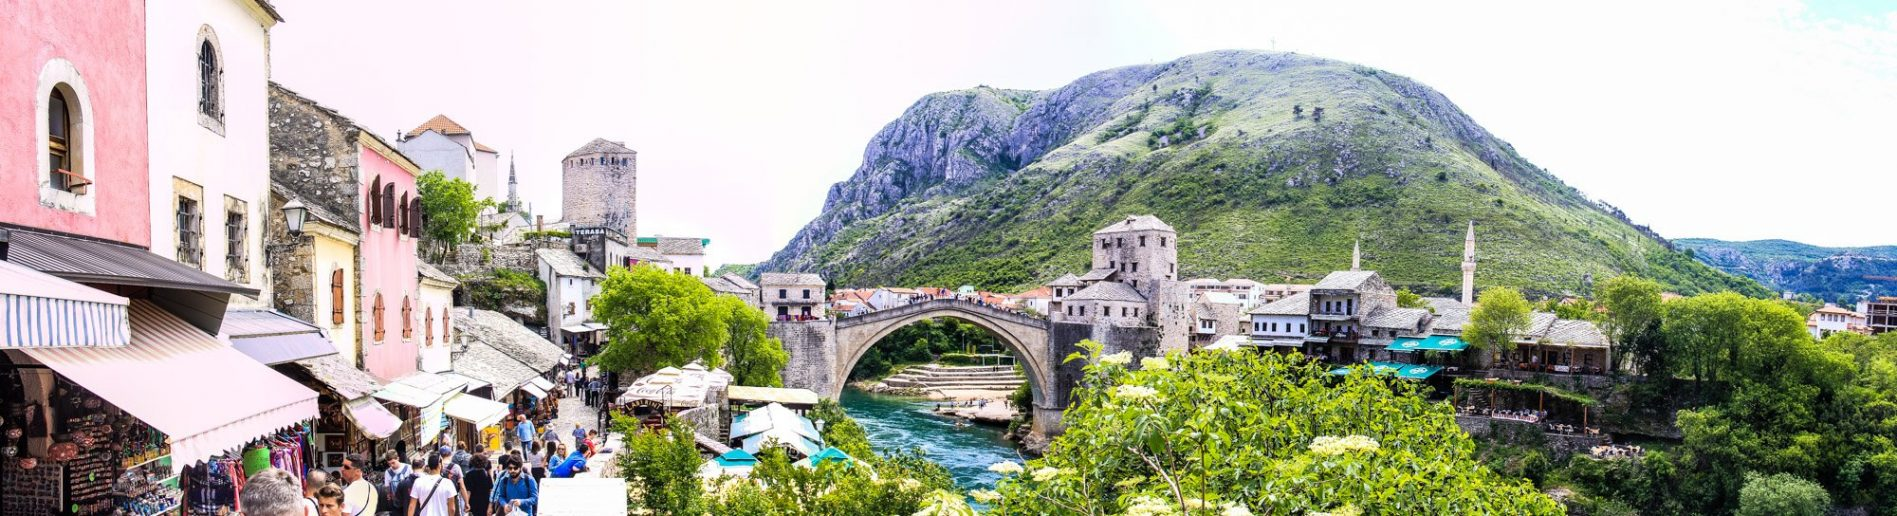 mostar-bosnia-photos-16